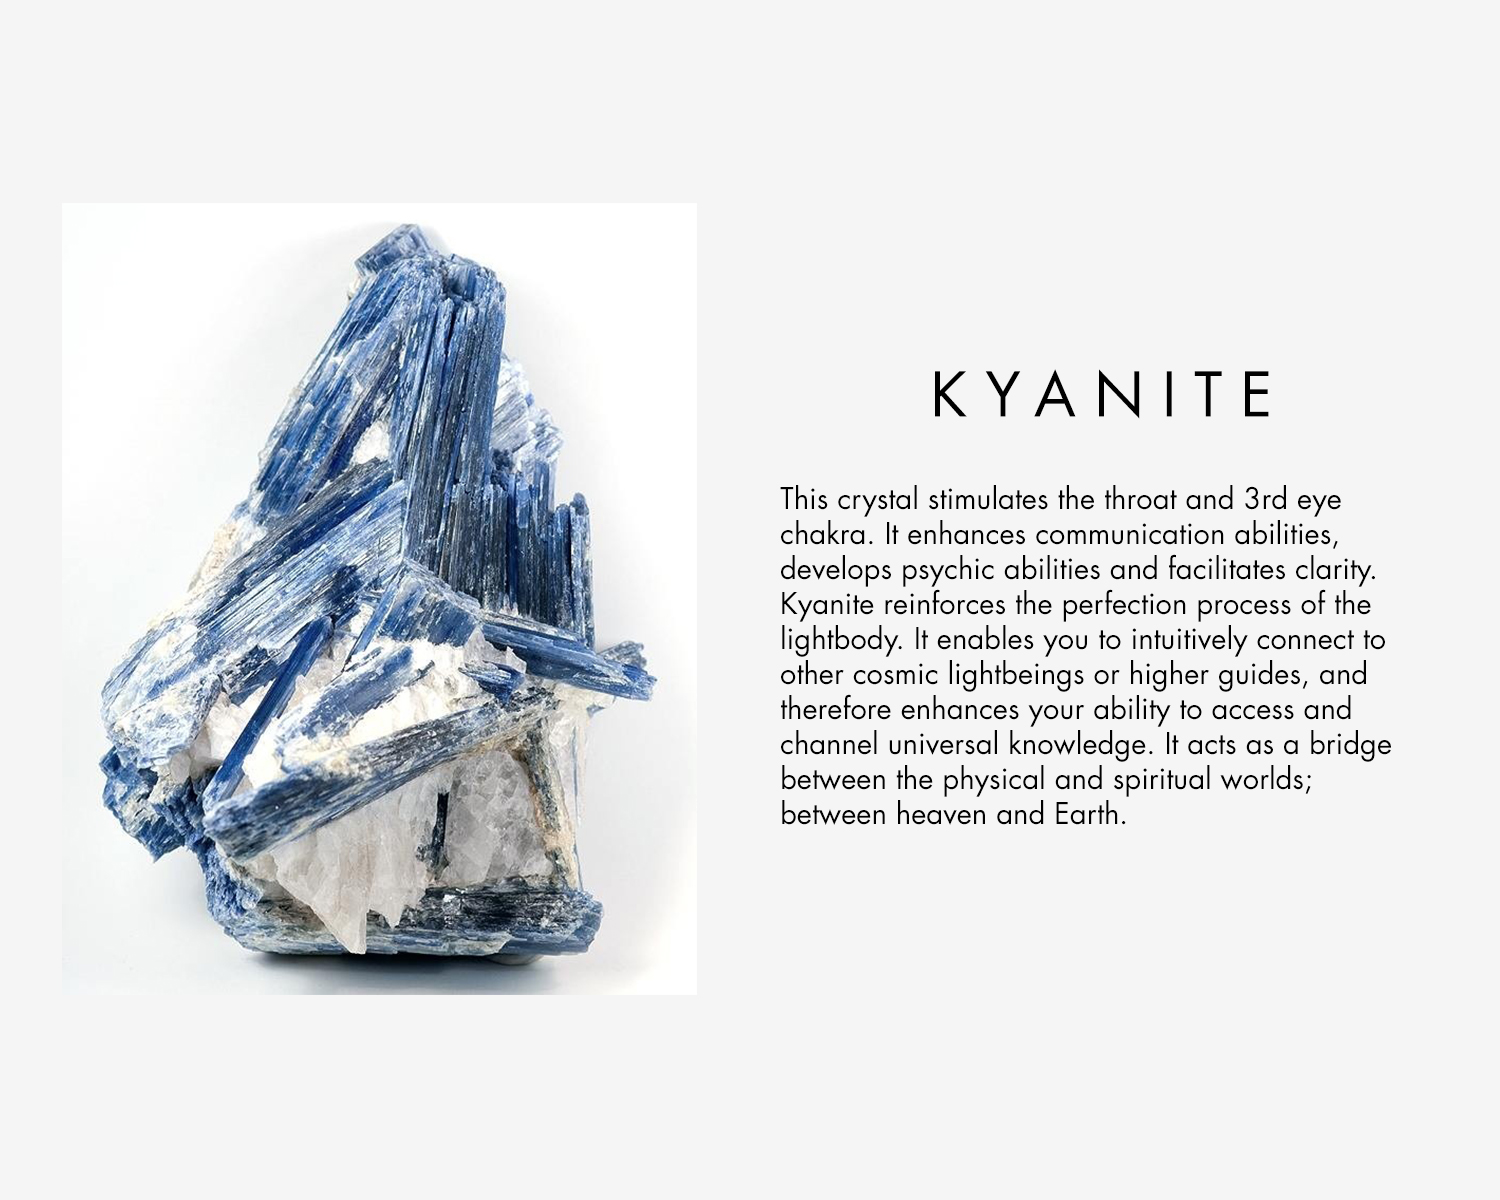 Kyanite stimulates the throat and 3rd eye chakra. It enhances communication abilities, develops psychic abilities and facilitates clarity. Kyanite reinforces the perfection process of the light body. it enables you to intuitively connect to other cosmic light beings or high guides, and therefore enhances your ability to access and channel universal knowledge. It acts as a bridge between the physical and spiritual world; between heaven and earth.